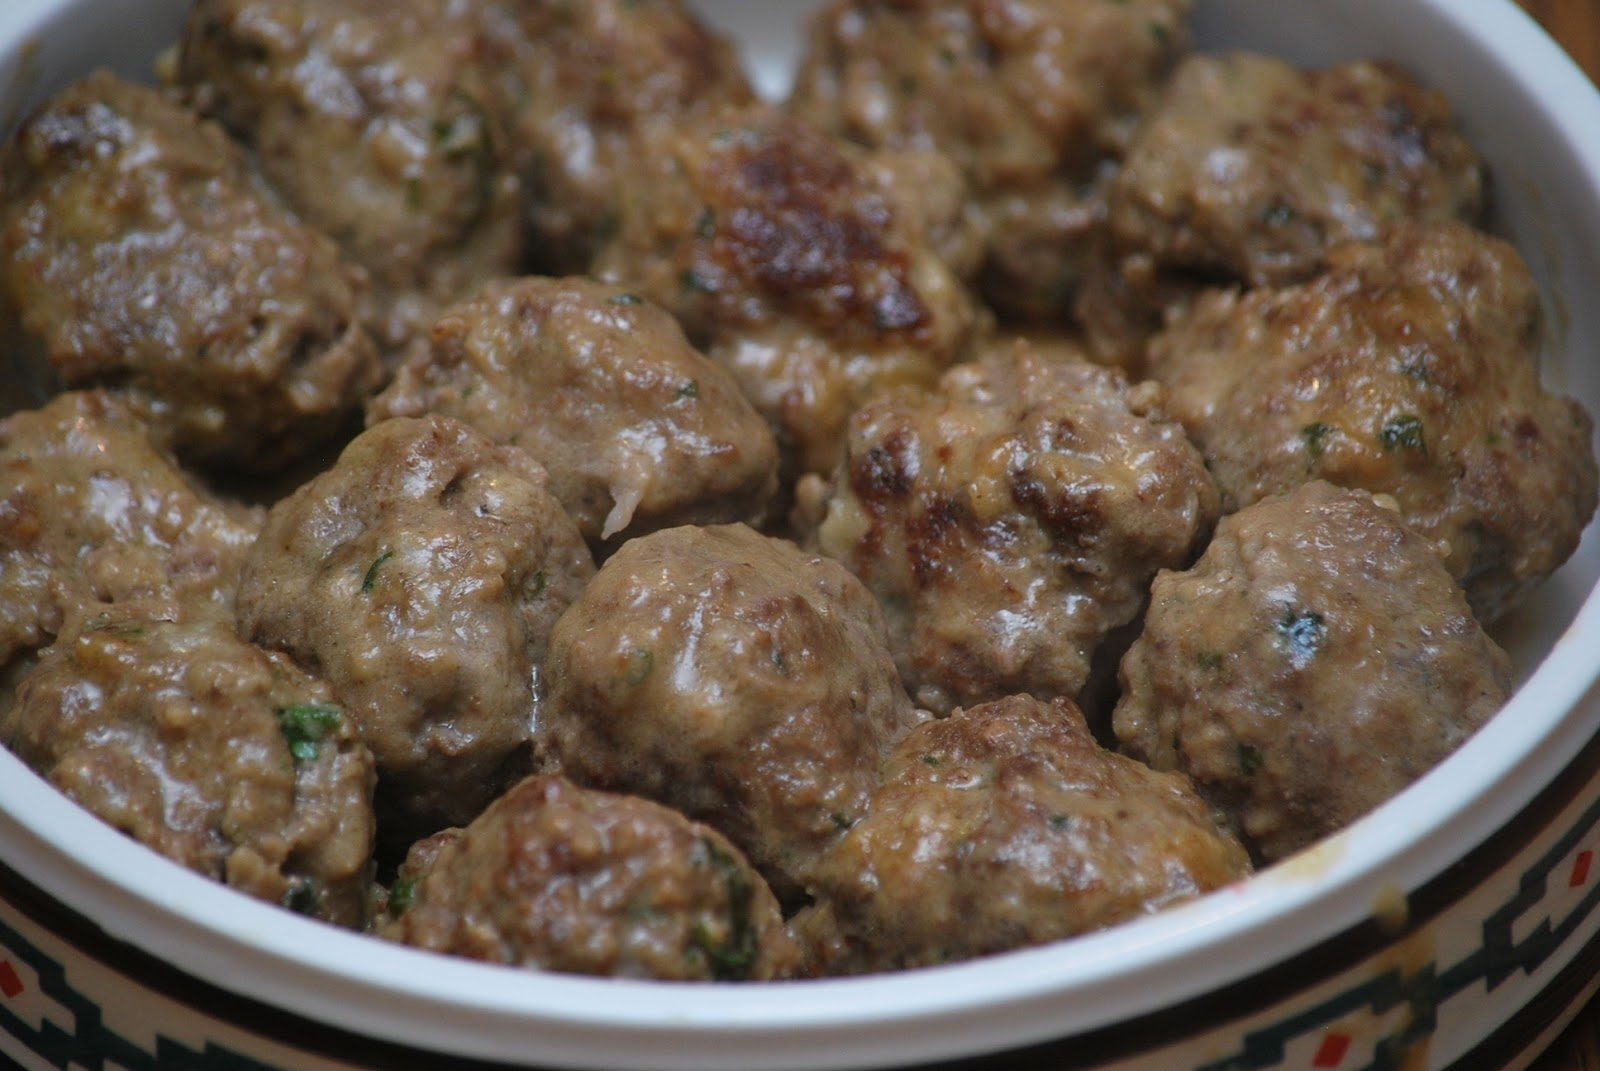 My story in recipes: Swedish Meatballs